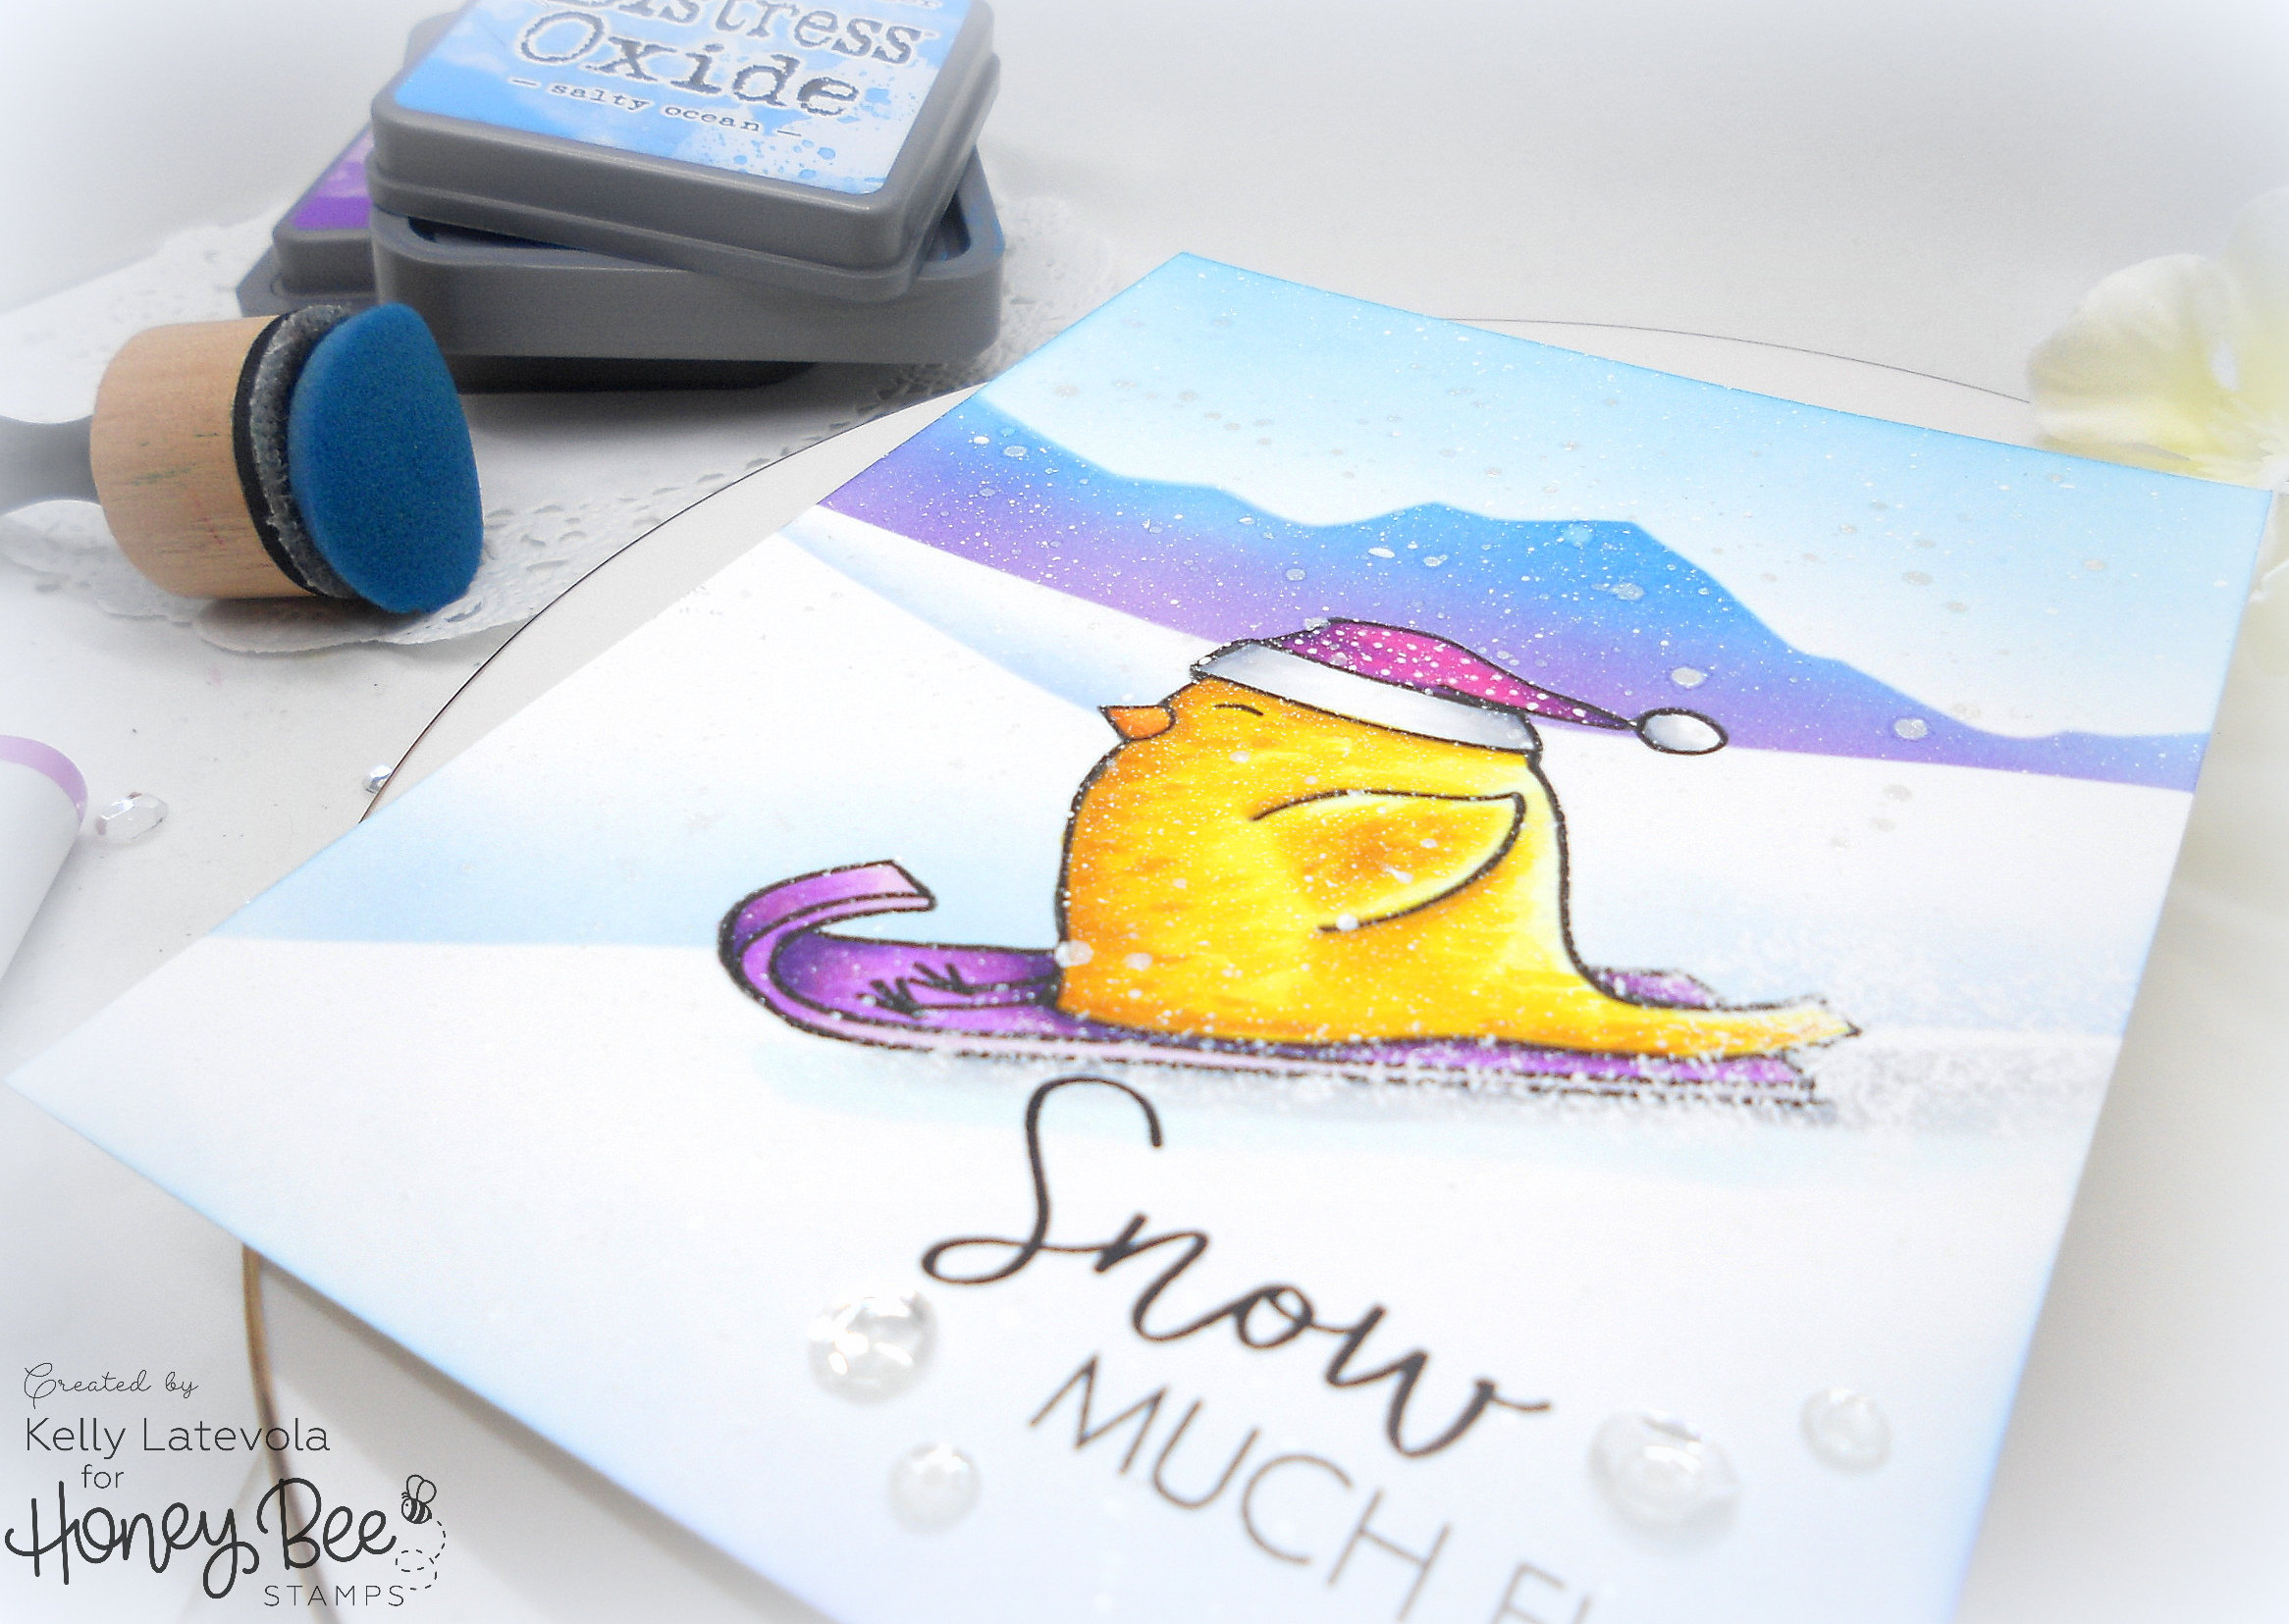 Snow Much Fun: Creating A Snow Scene with Kelly Latevola